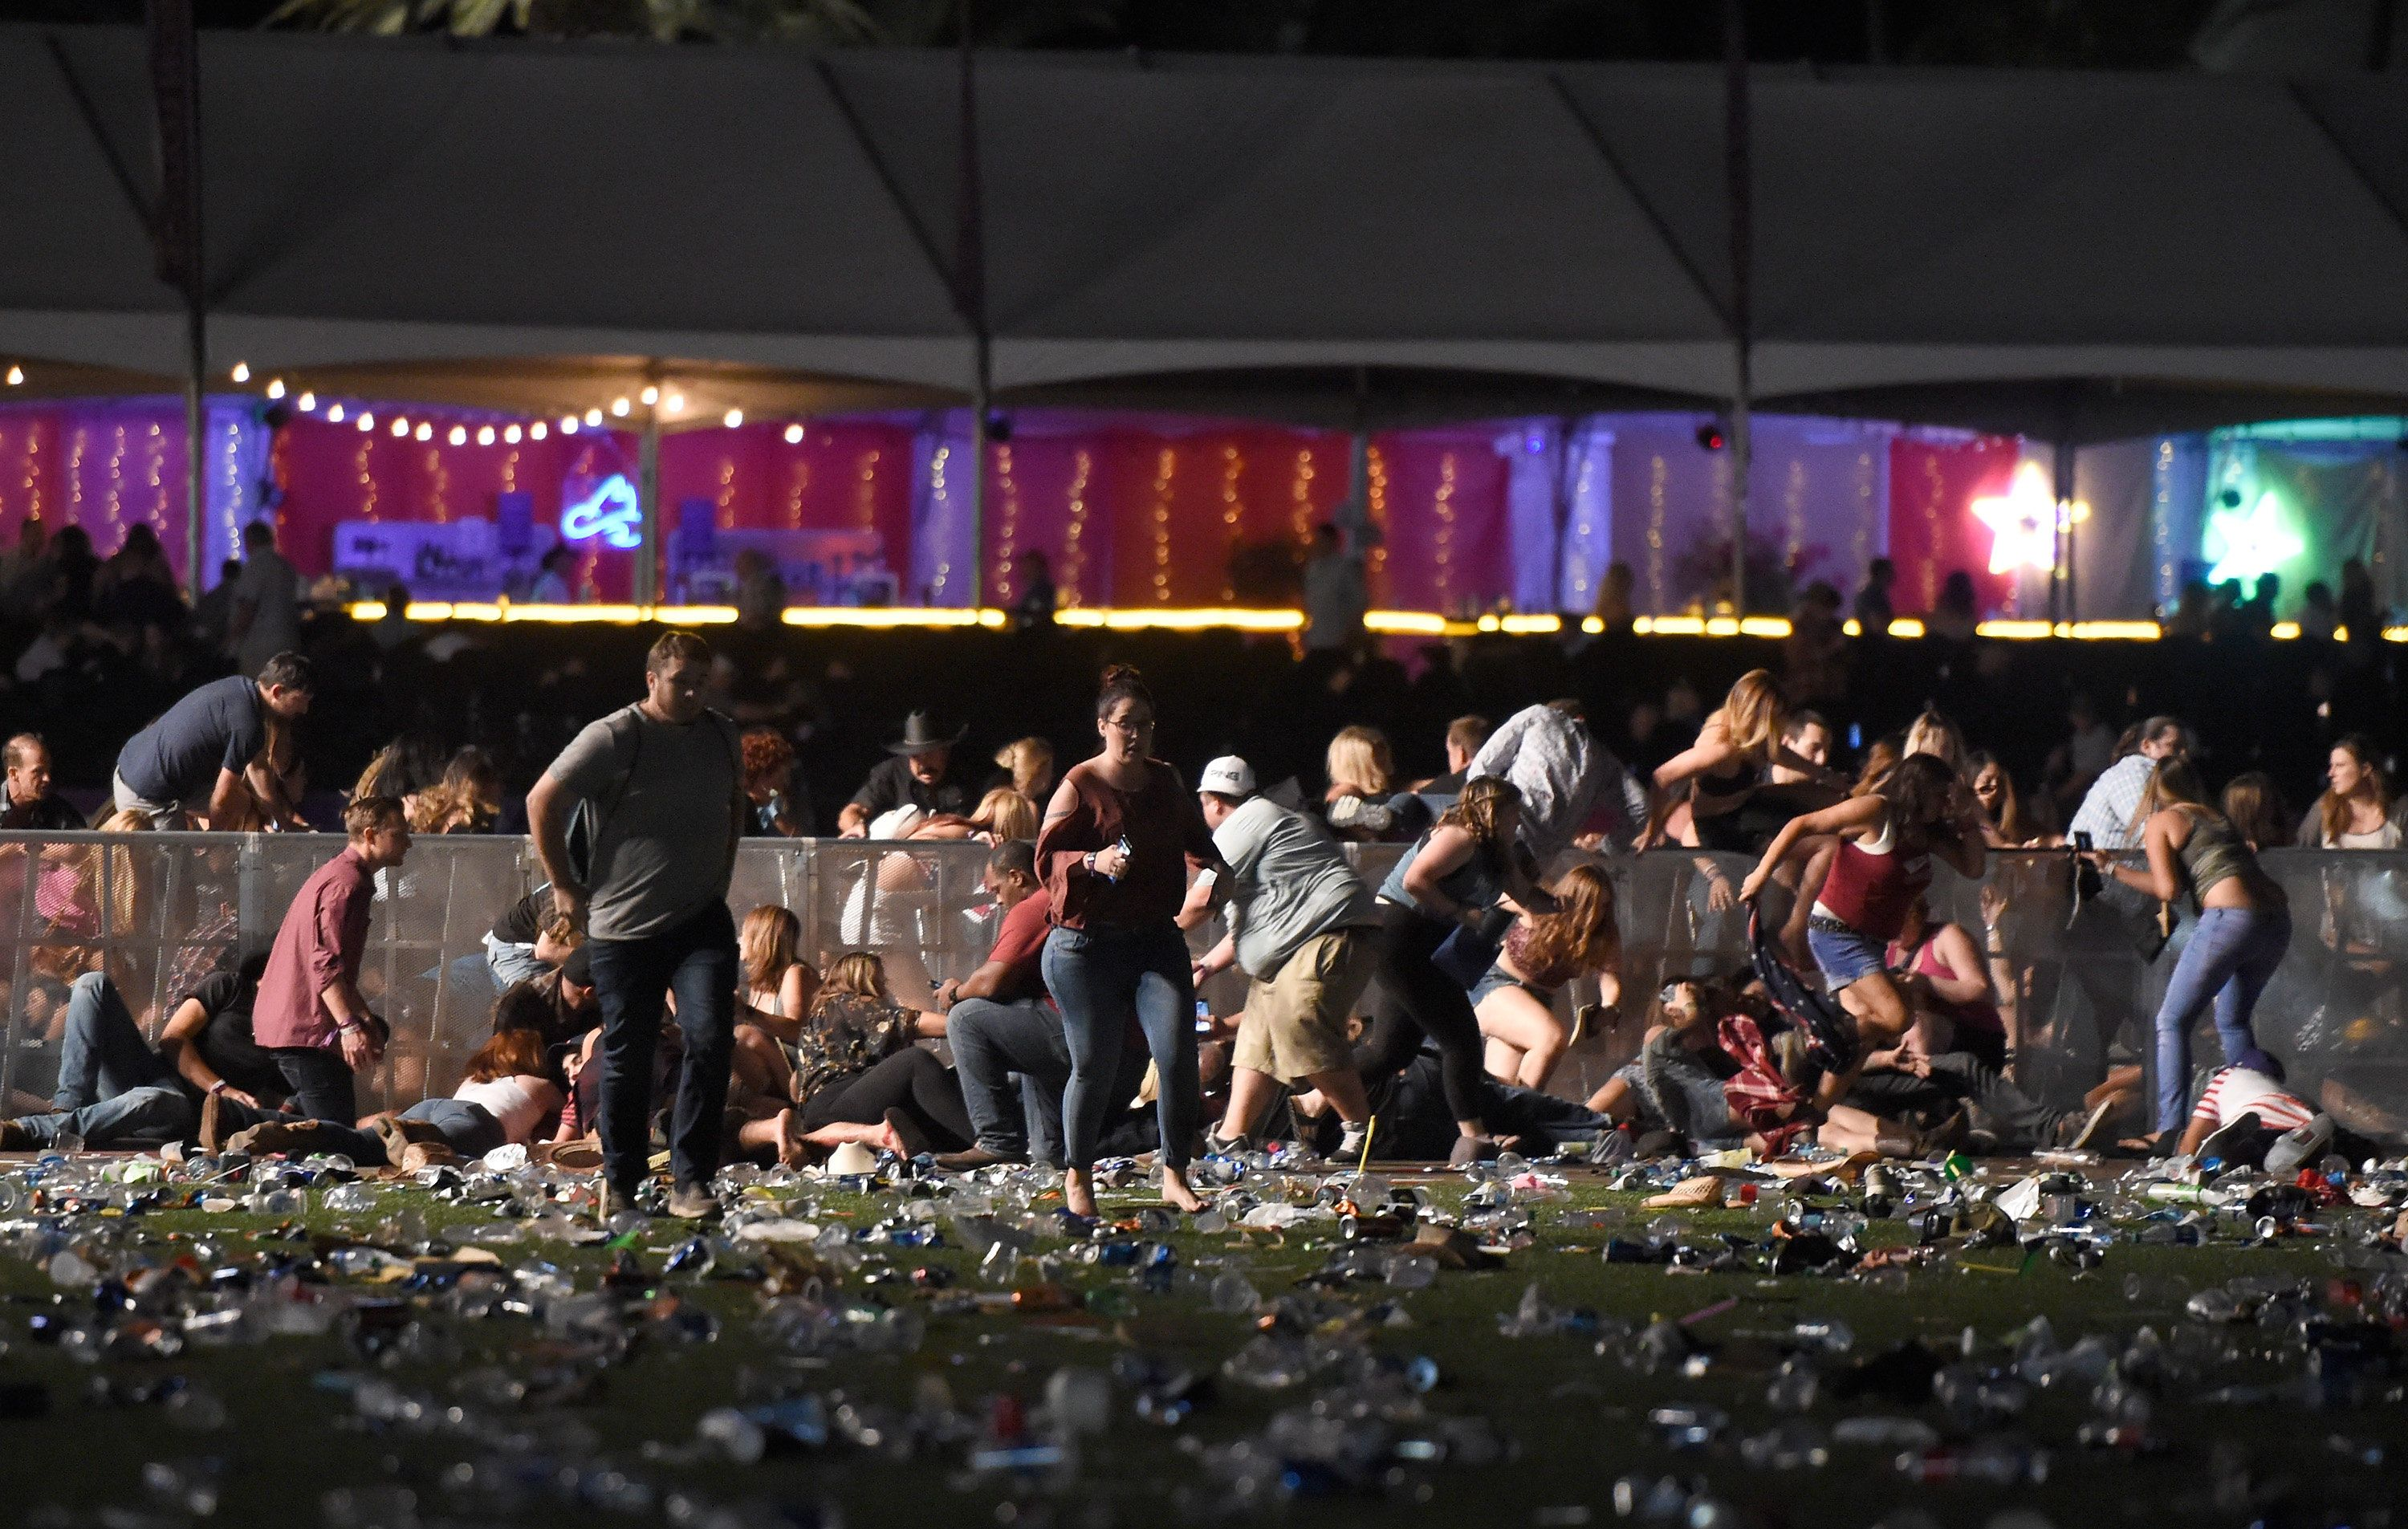 Official GoFundMe page launched for Las Vegas shooting victims